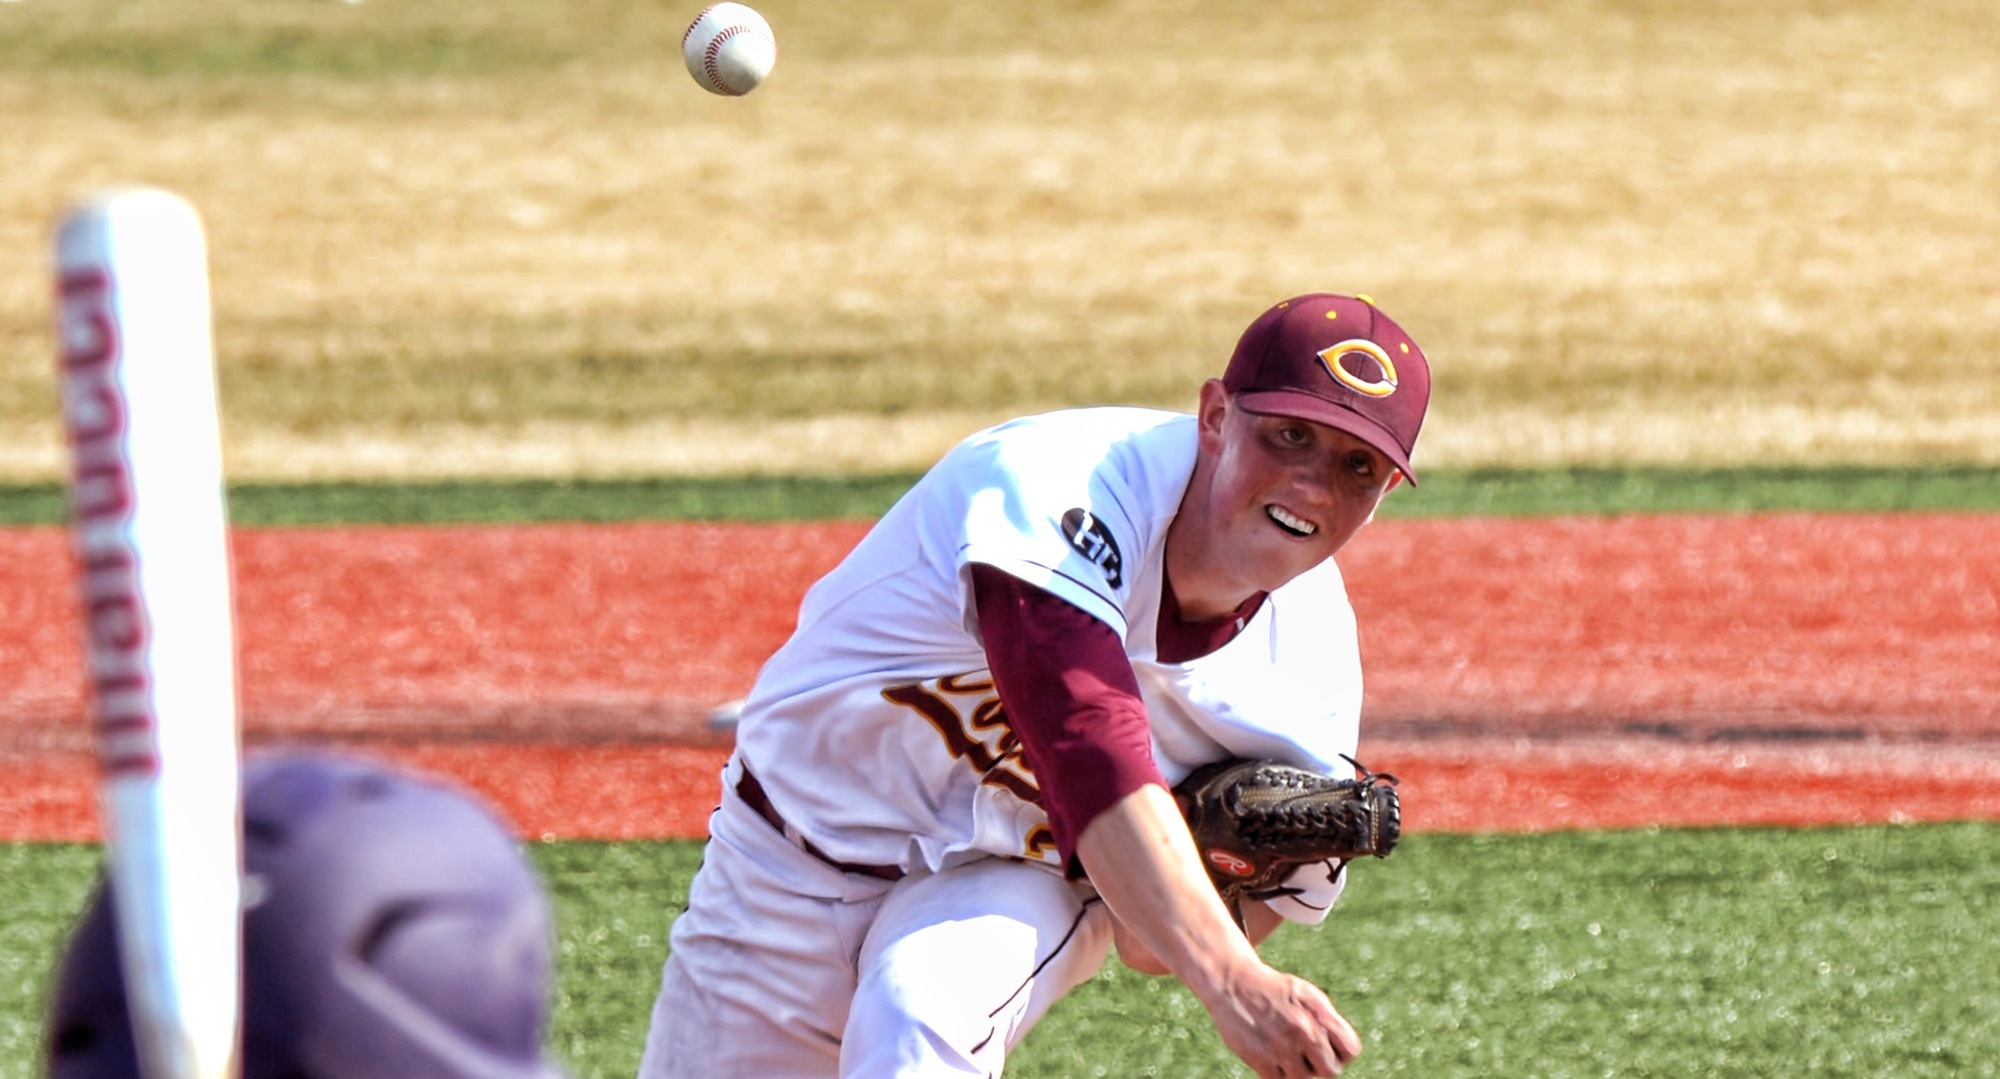 Senior Cole Christensen earned his second straight complete-game win over Hamline as he helped the Cobbers beat the Pipers 6-3 in Game 1.